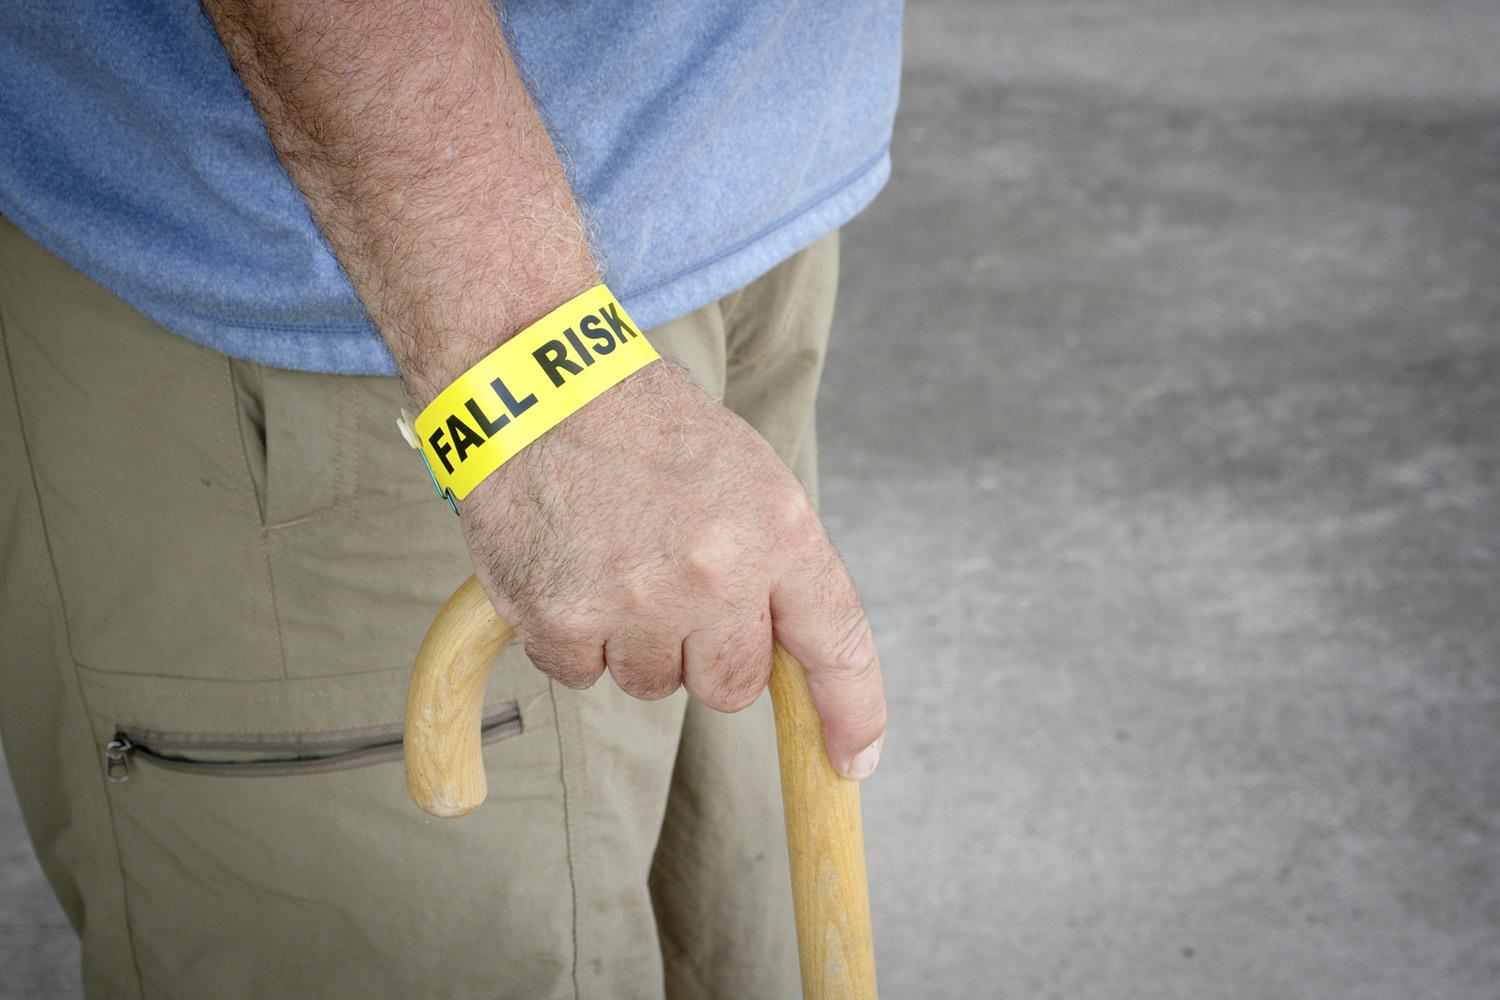 Parkinson's disease fall risk